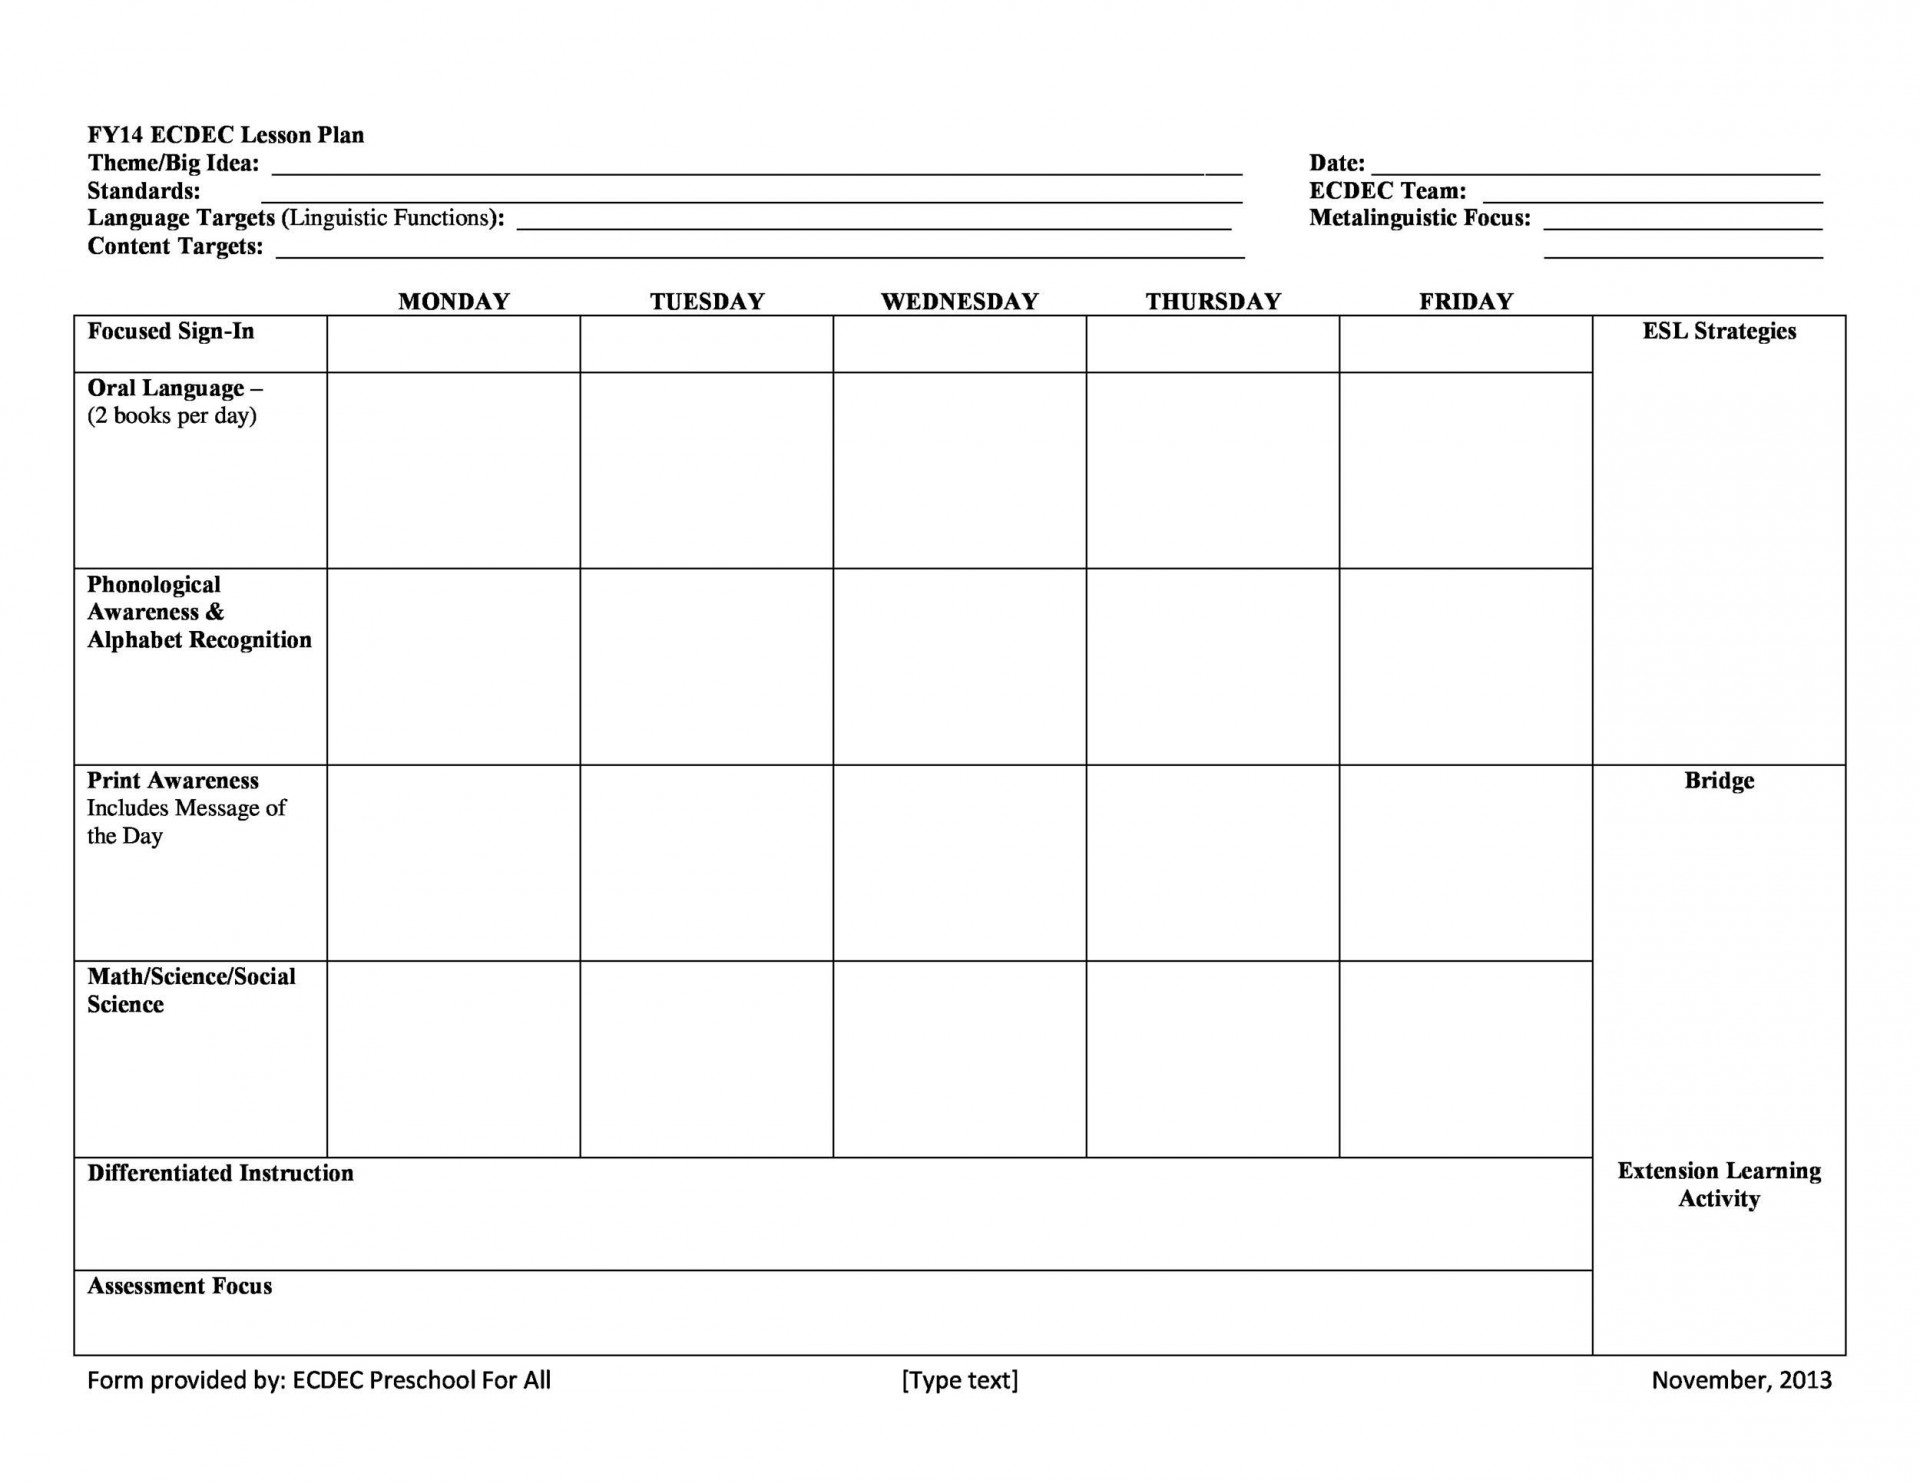 Blank Lesson Plan Template Doc from www.addictionary.org